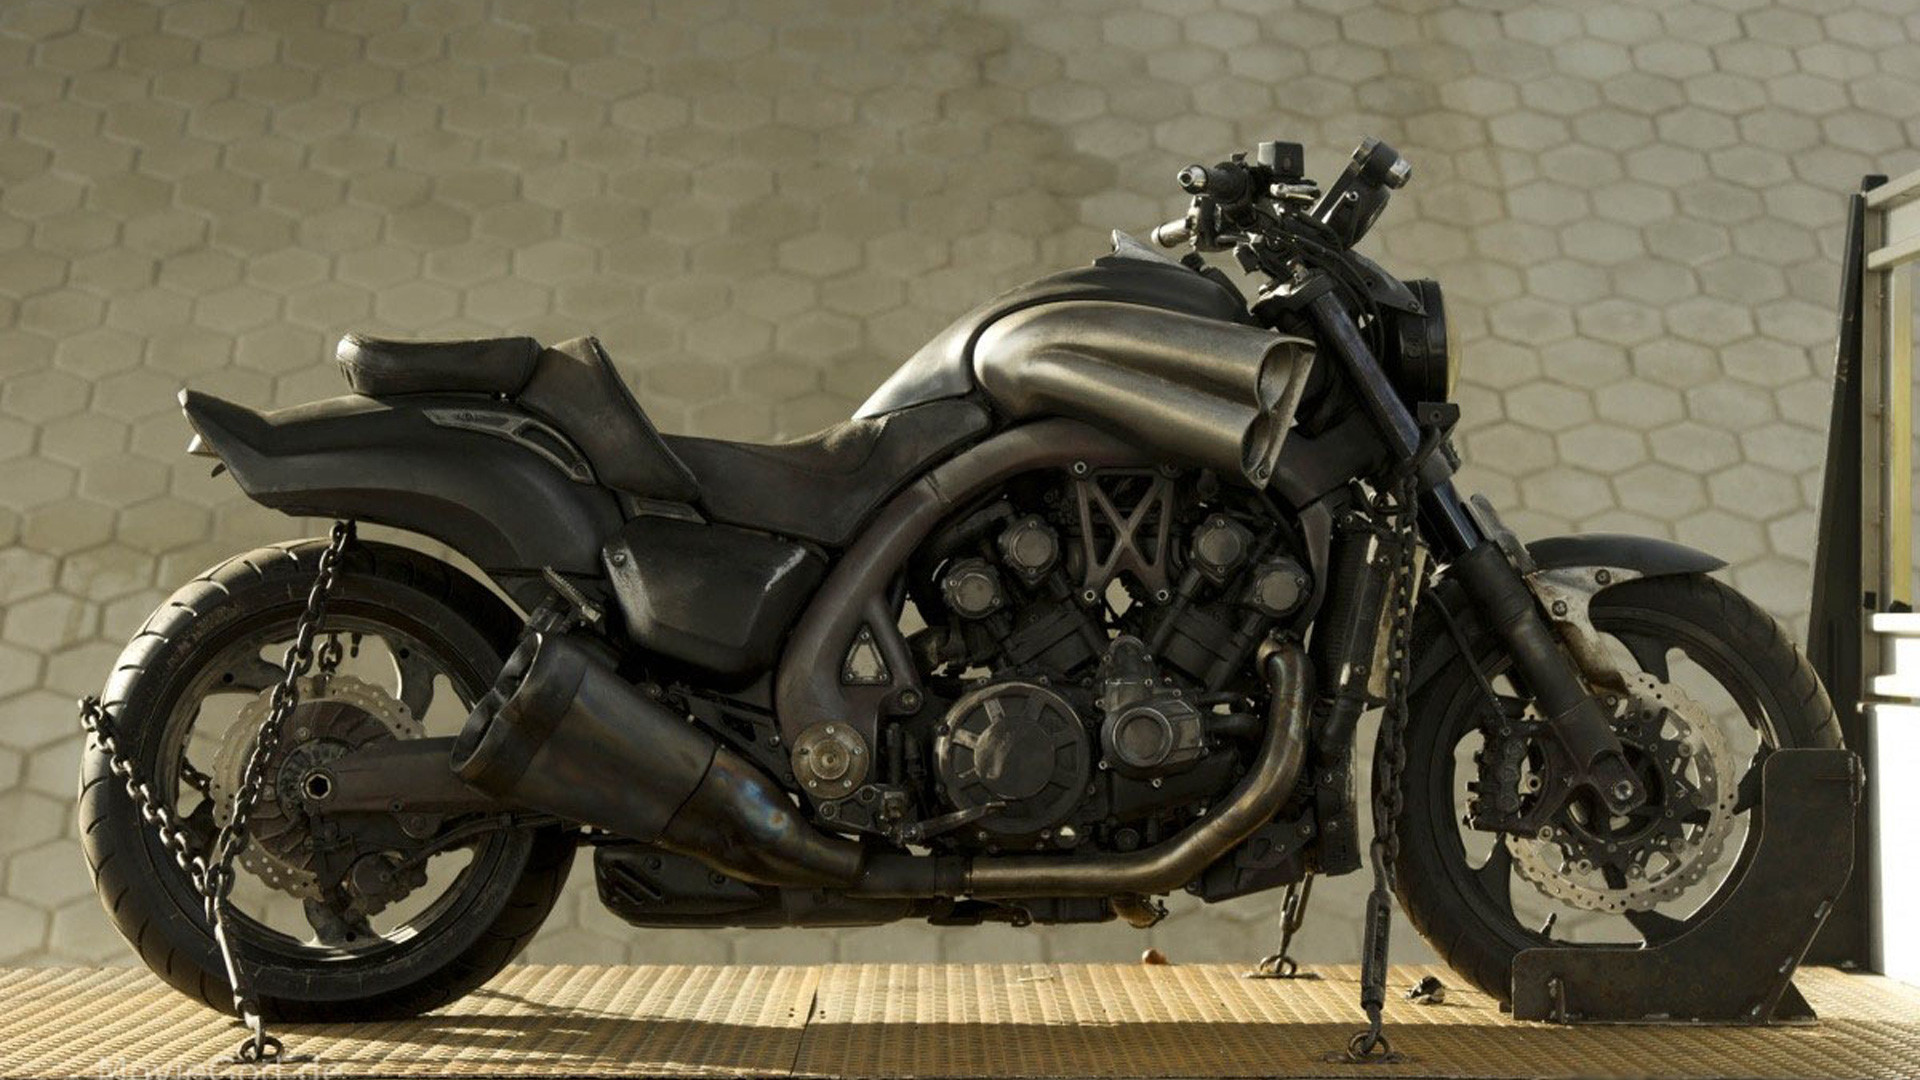 A customized 2009 Yamaha VMAX (Yamaha V-Max) is the Ghost Rider bike (the  Hell Cycle) from the movie Ghost Rider: Spirit of Vengeance